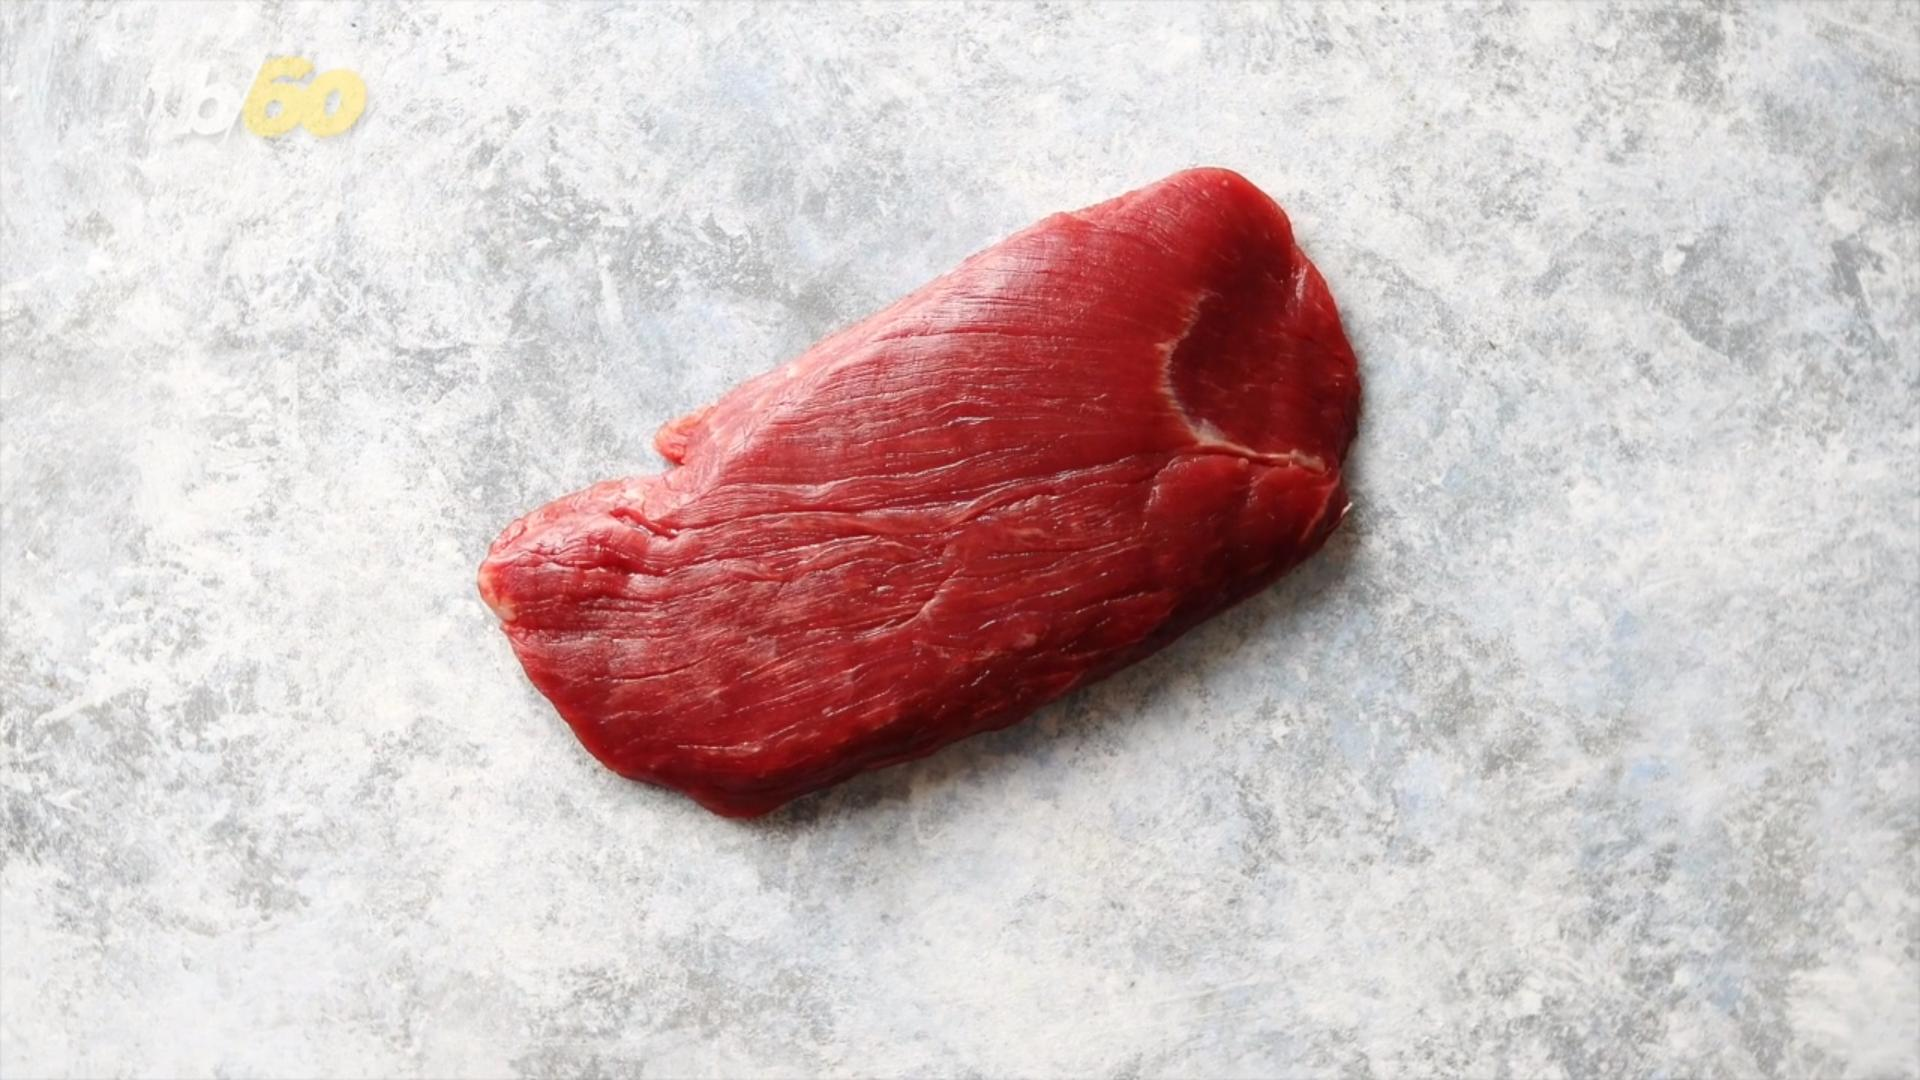 How To Handle Raw Meat, According To Food Safety Experts